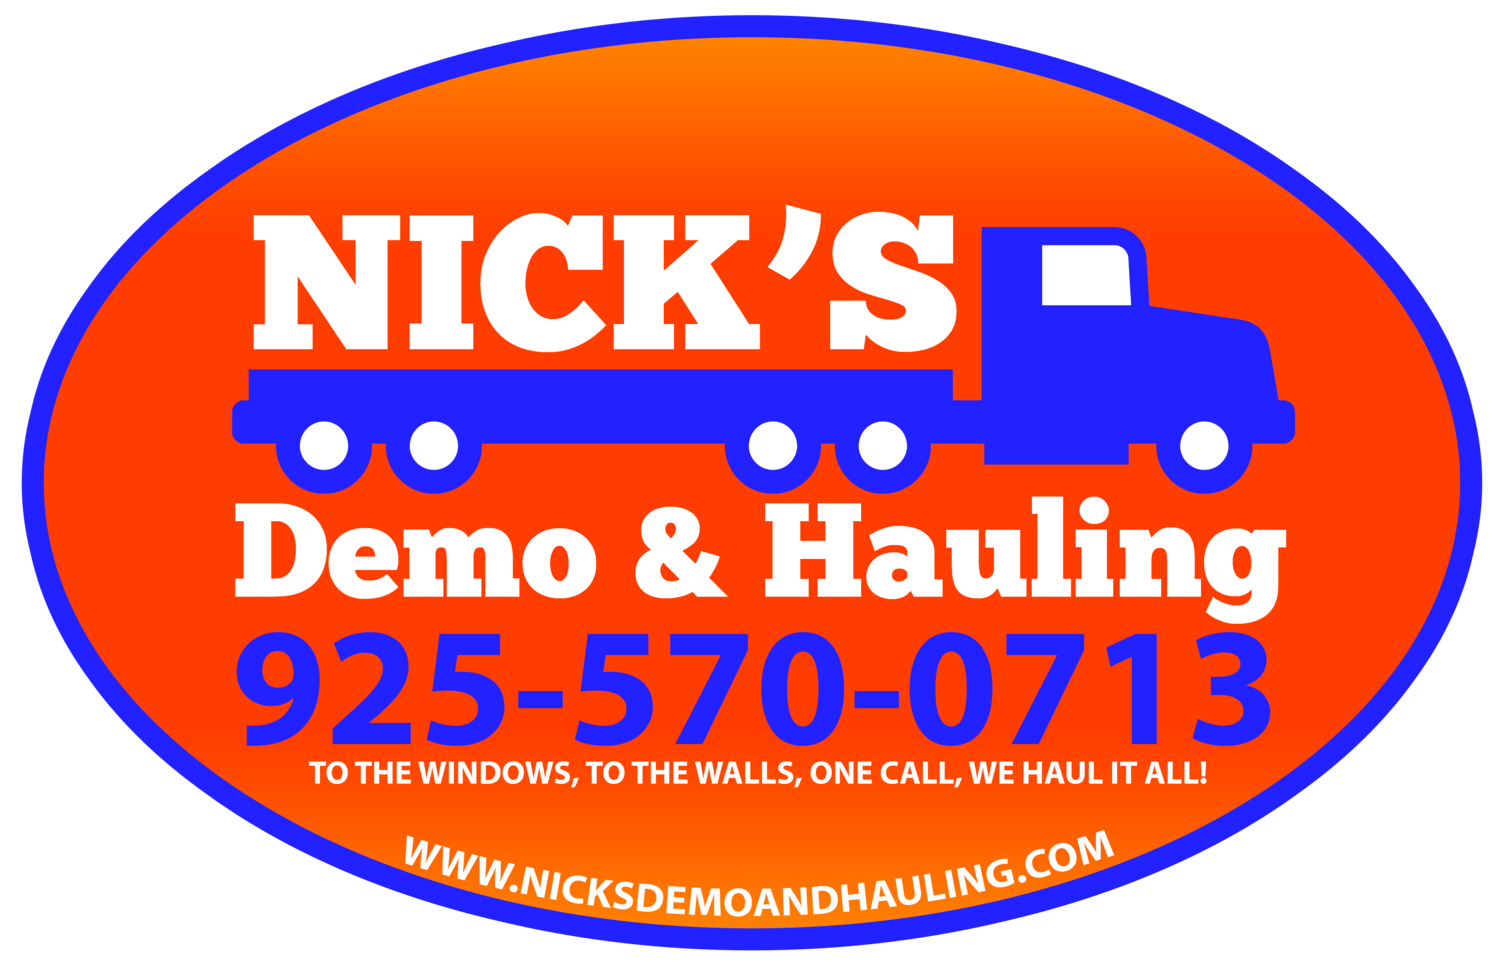 Nick's Demo & Hauling